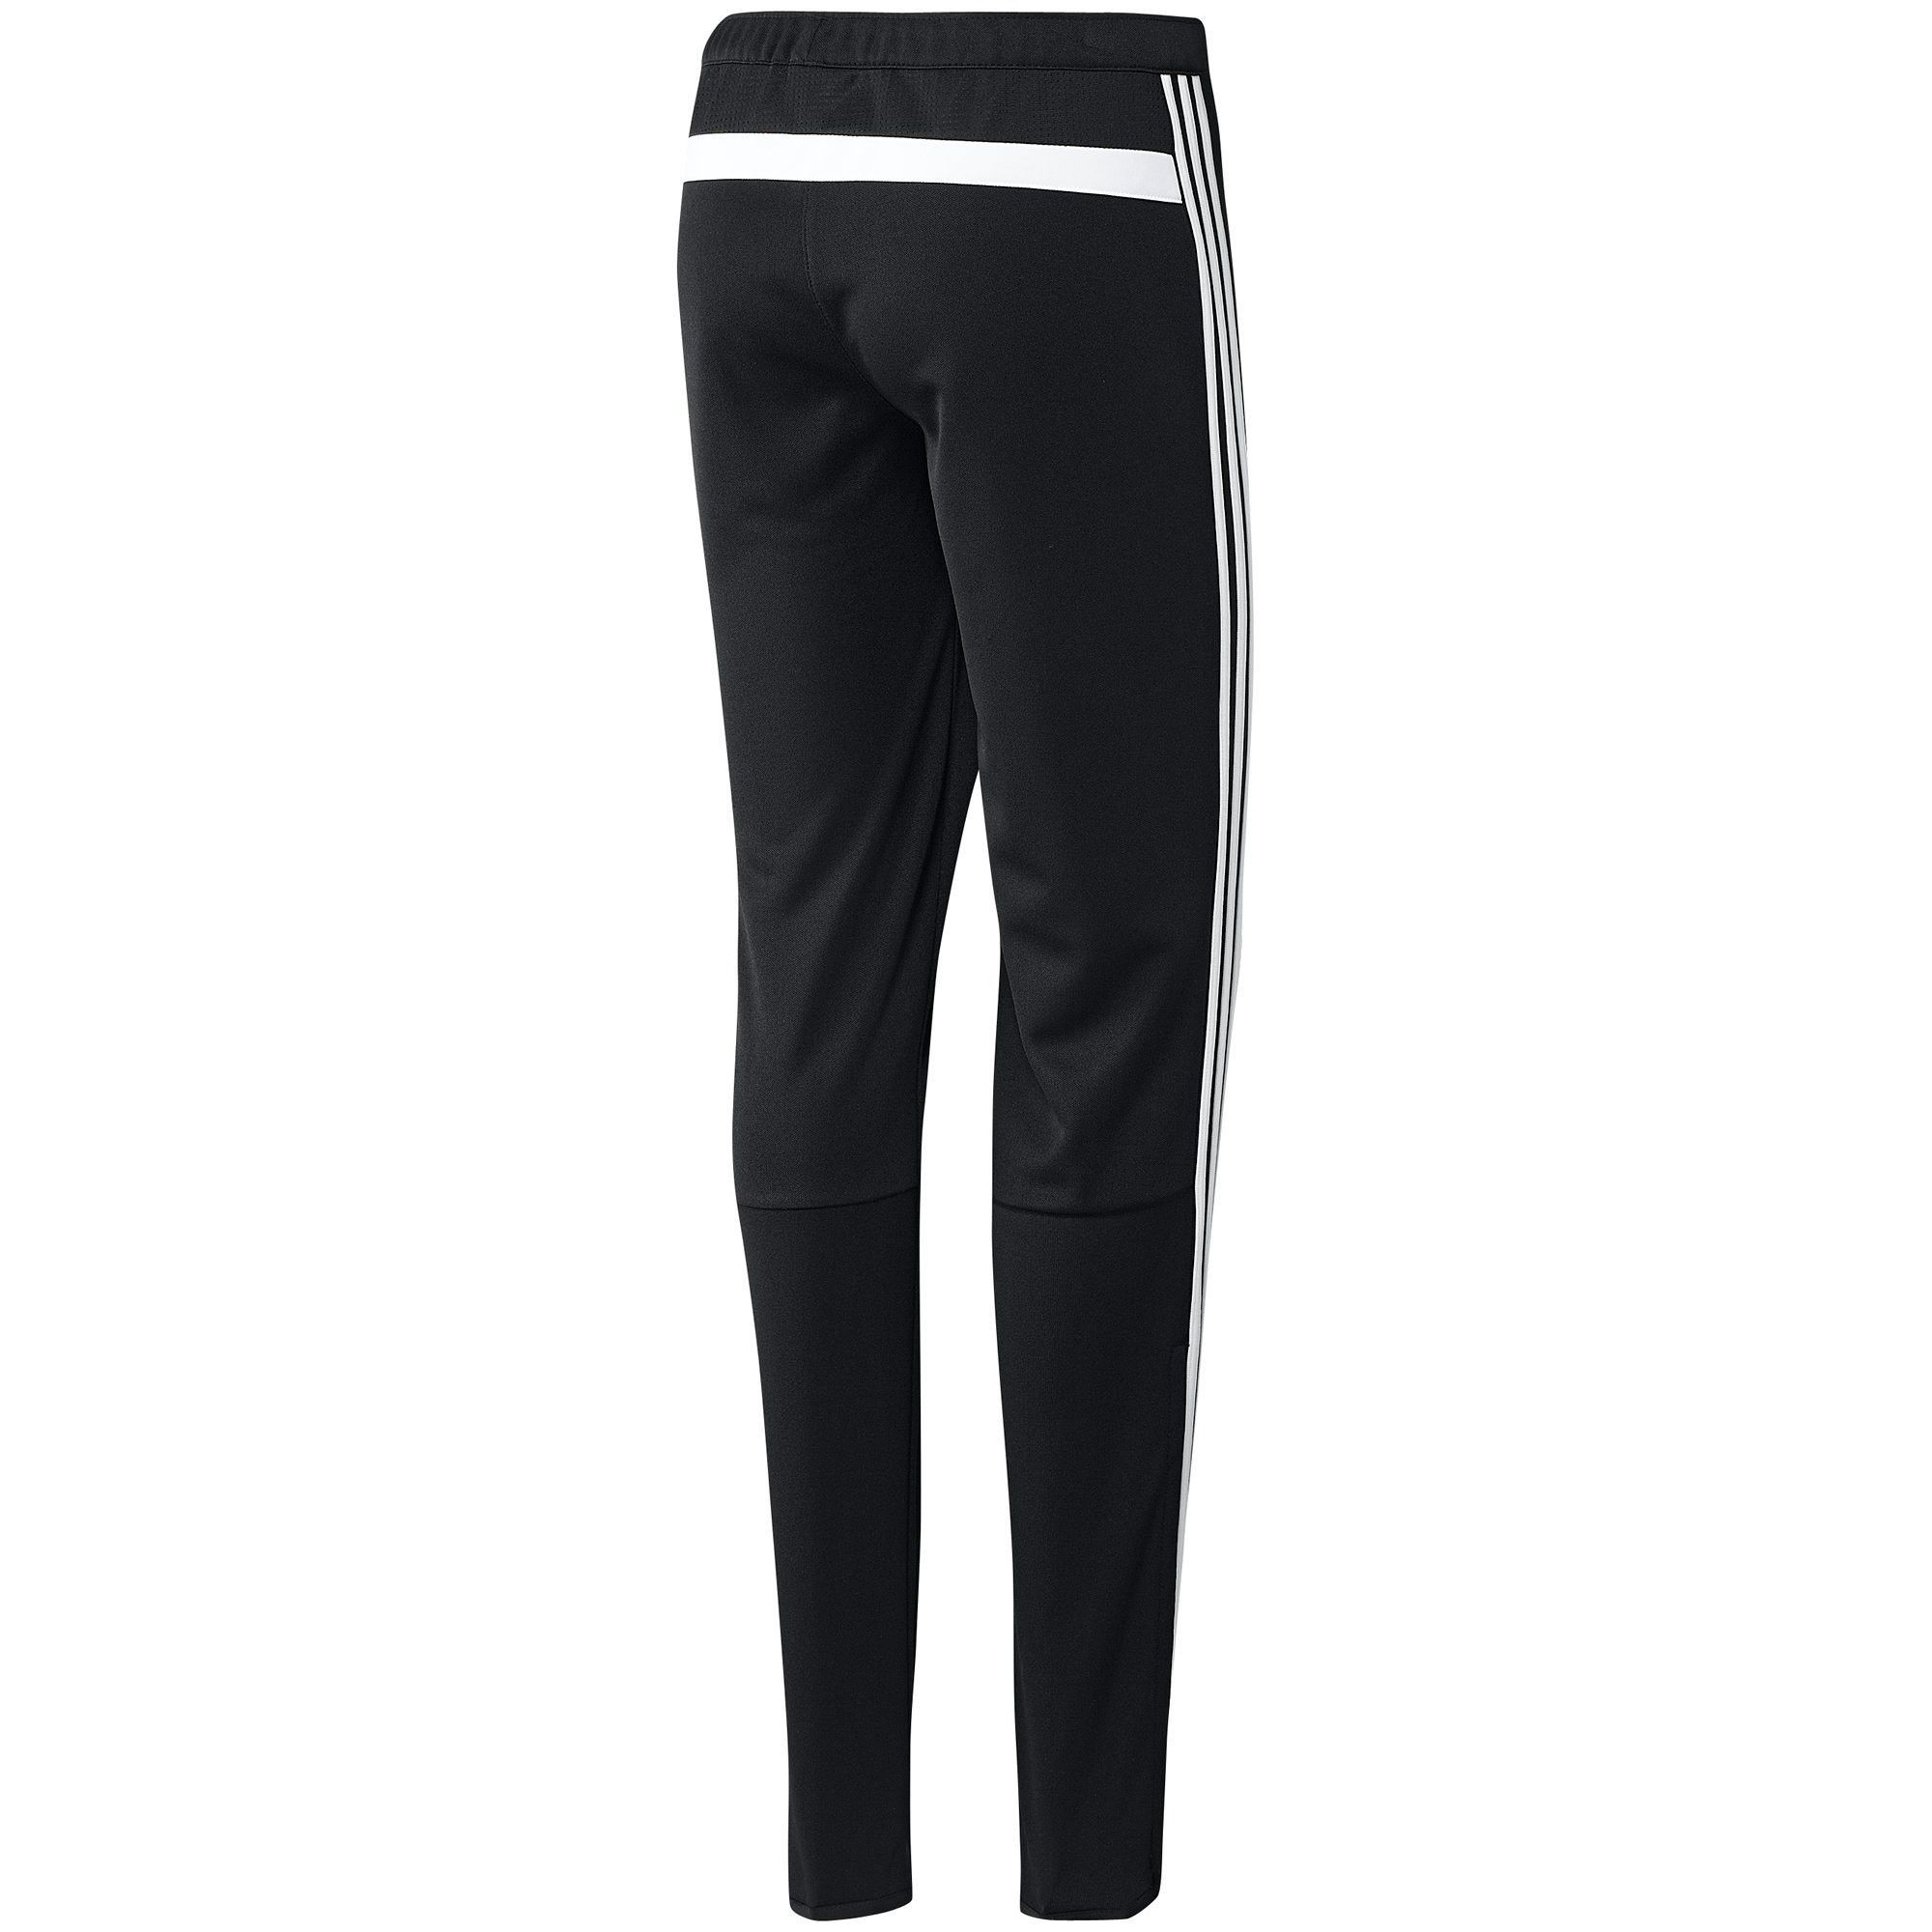 Adidas Tiro 13 Women's Training Pants (Black/White) - Z05735